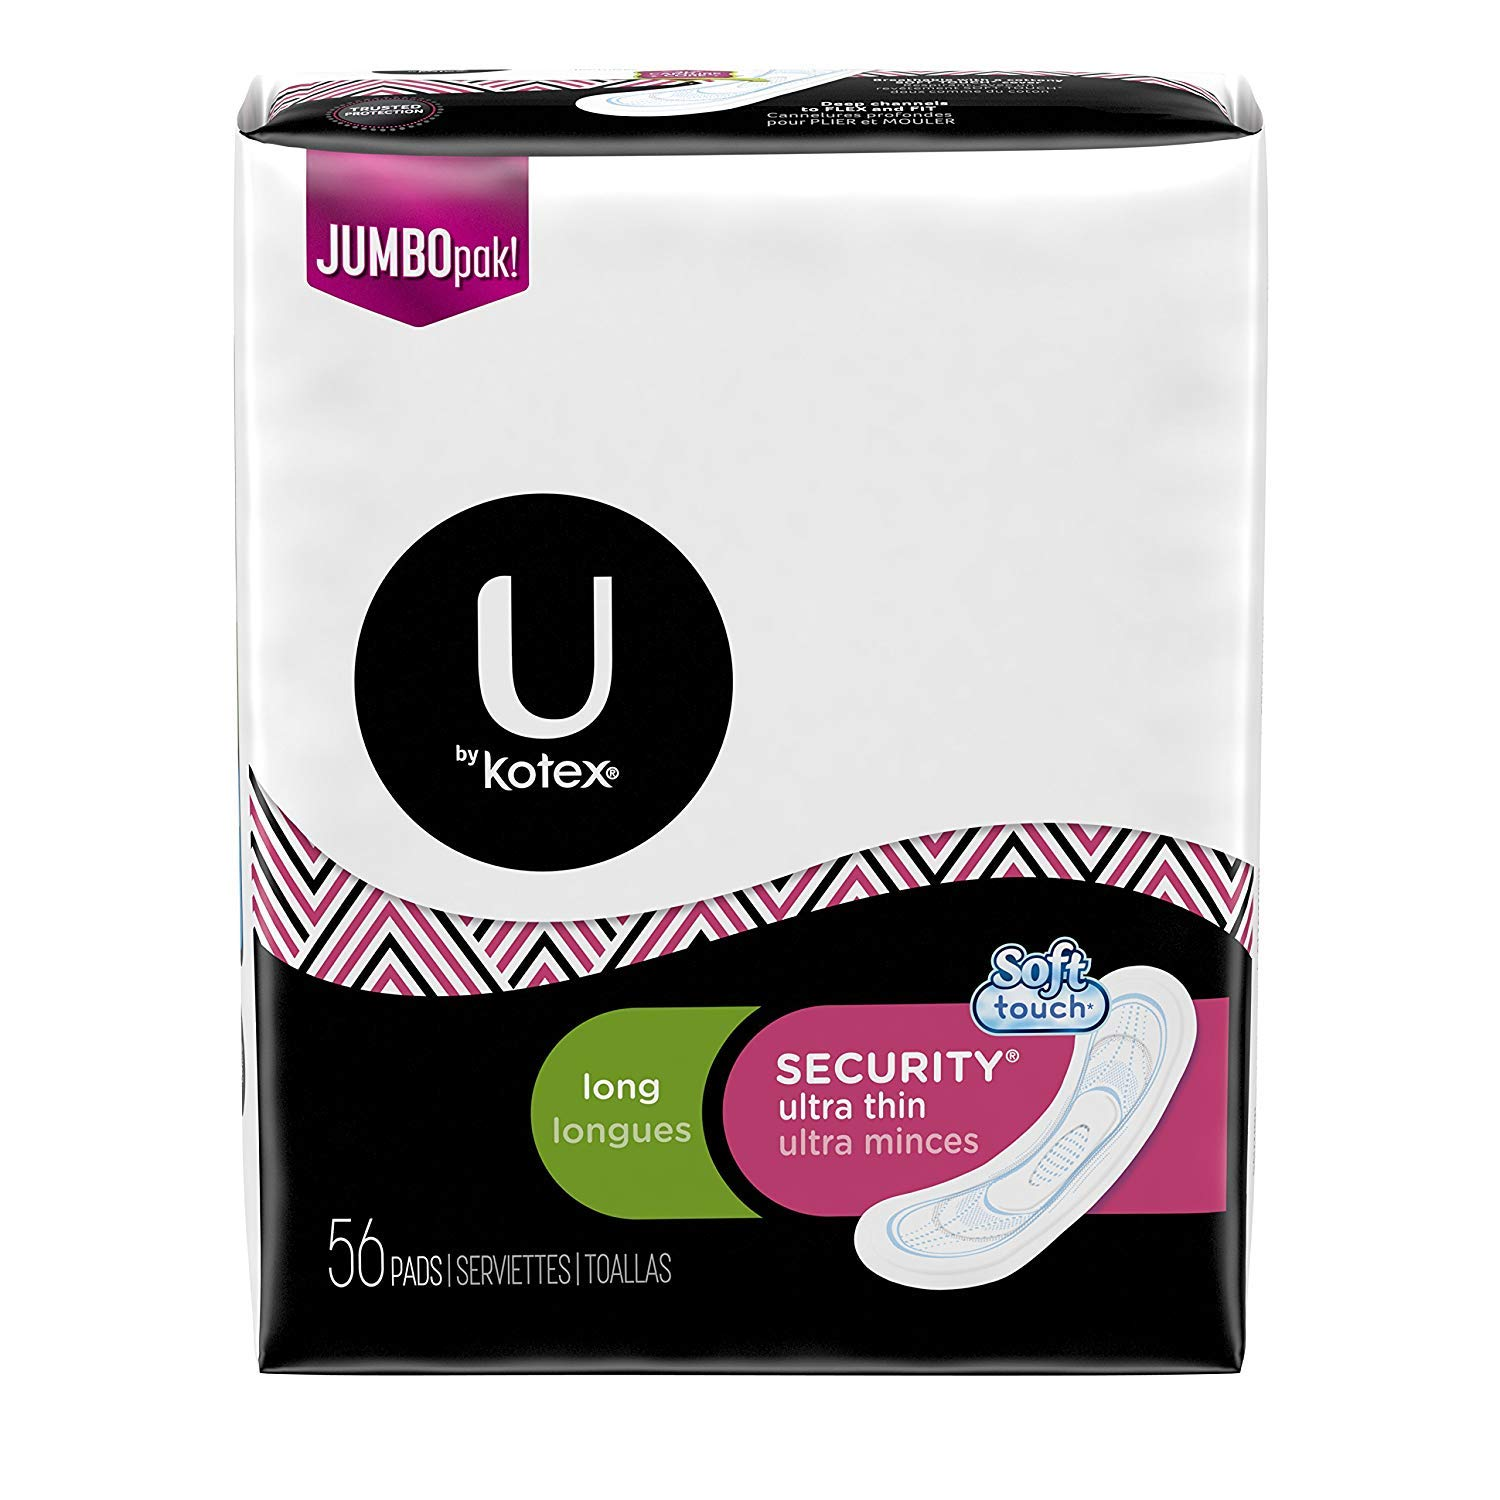 U by Kotex Security Ultra Thin Pads, Long, Fragrance-Free, 56 Count (4-Pack (56 Count))